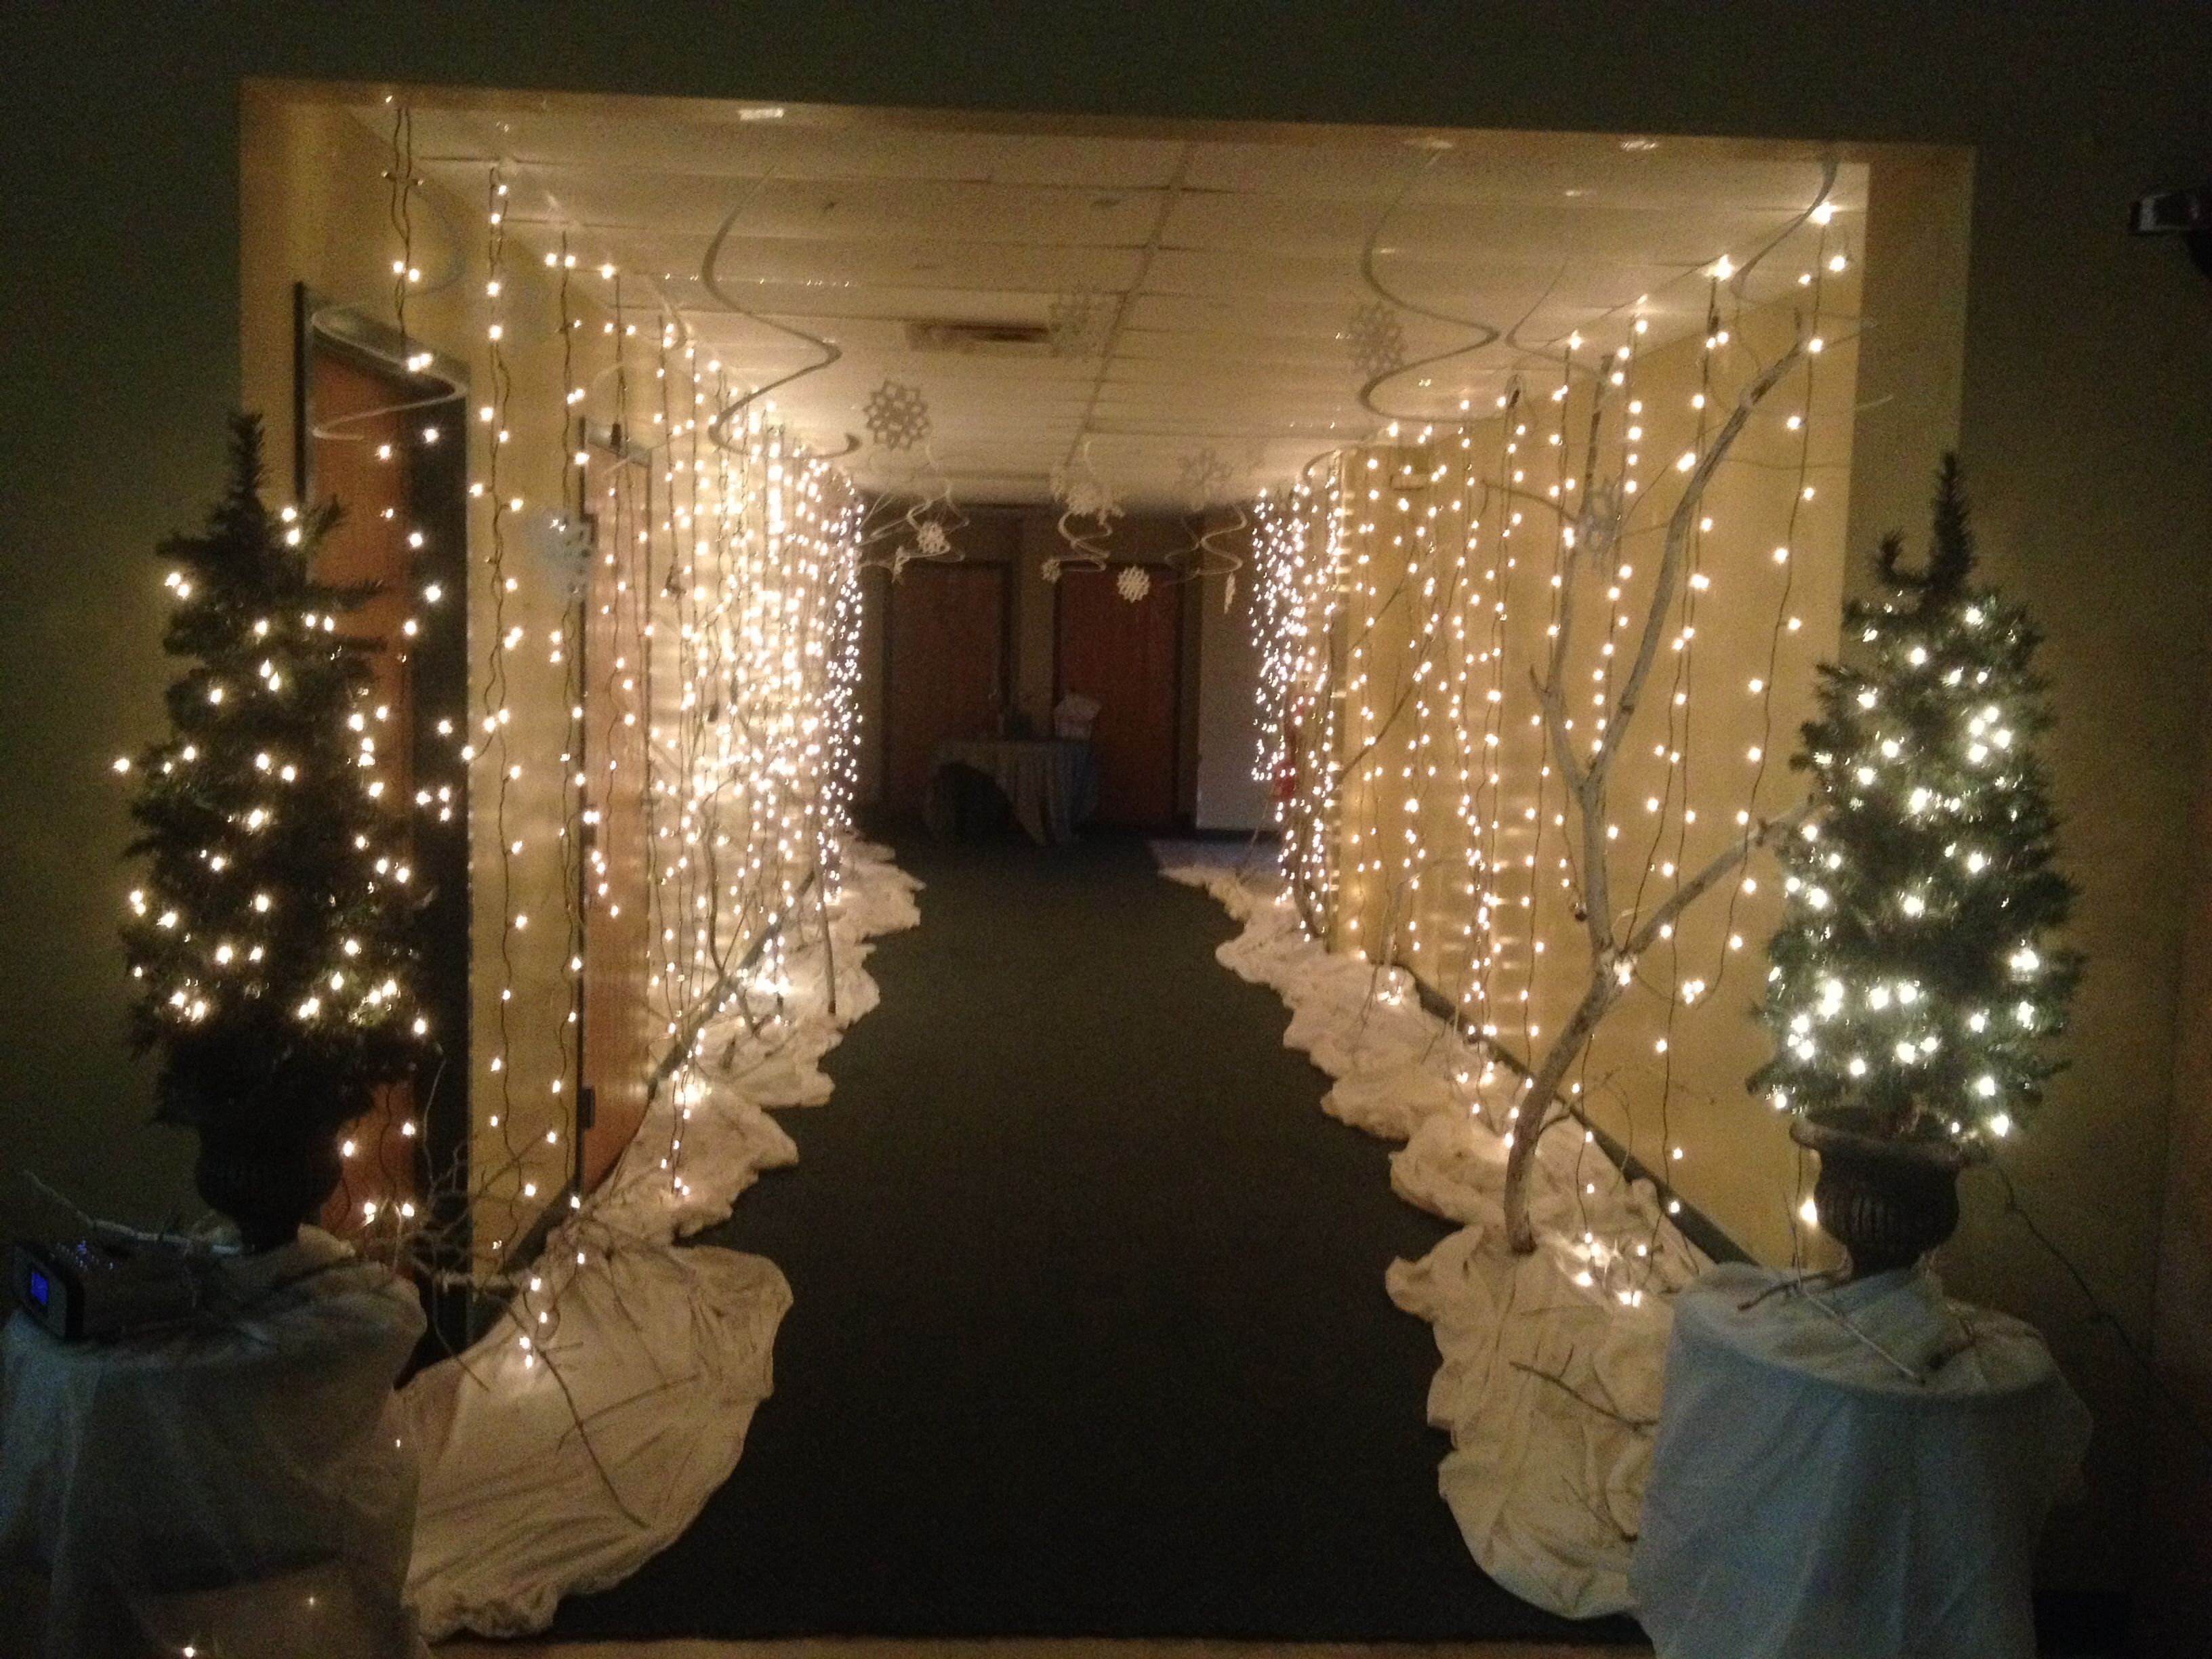 lighting ideas to light up your modern hallway masquerade ball decorations formal party decorations - Winter Wonderland Christmas Decorations